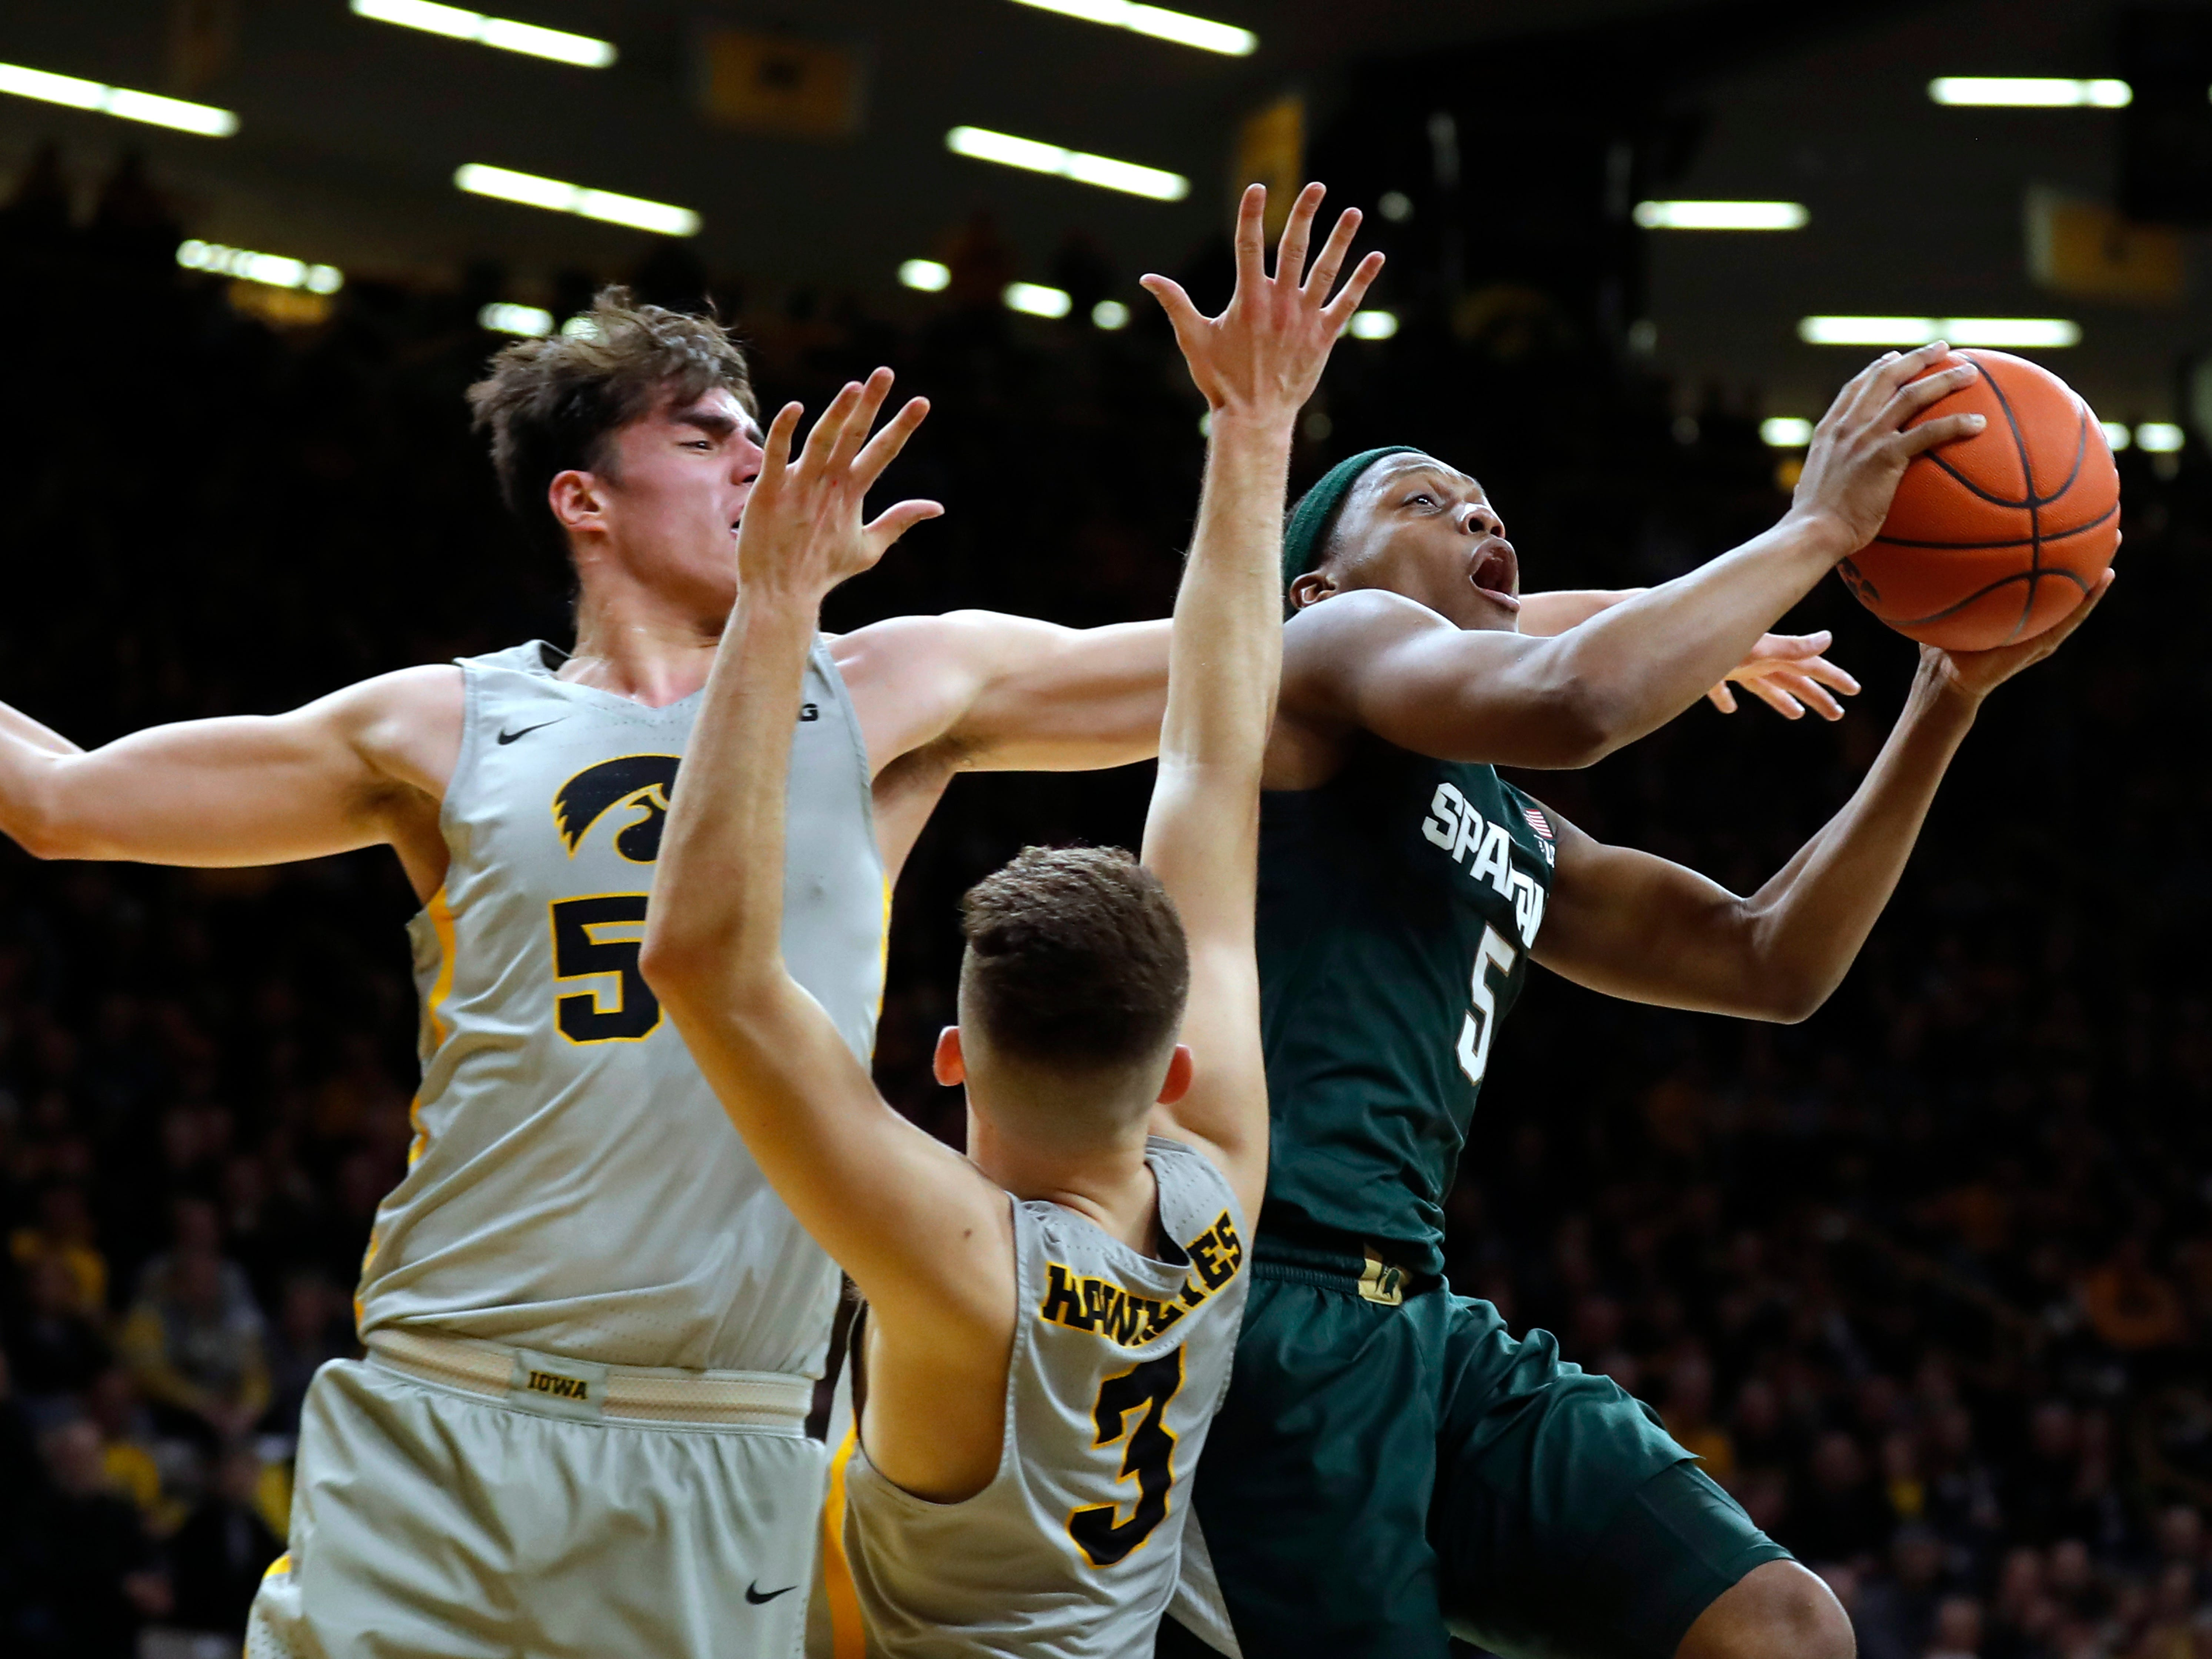 Michigan State guard Cassius Winston, right, drives to the basket over Iowa's Luka Garza, left, and Jordan Bohannon (3) during the first half of an NCAA college basketball game Thursday, Jan. 24, 2019, in Iowa City, Iowa.